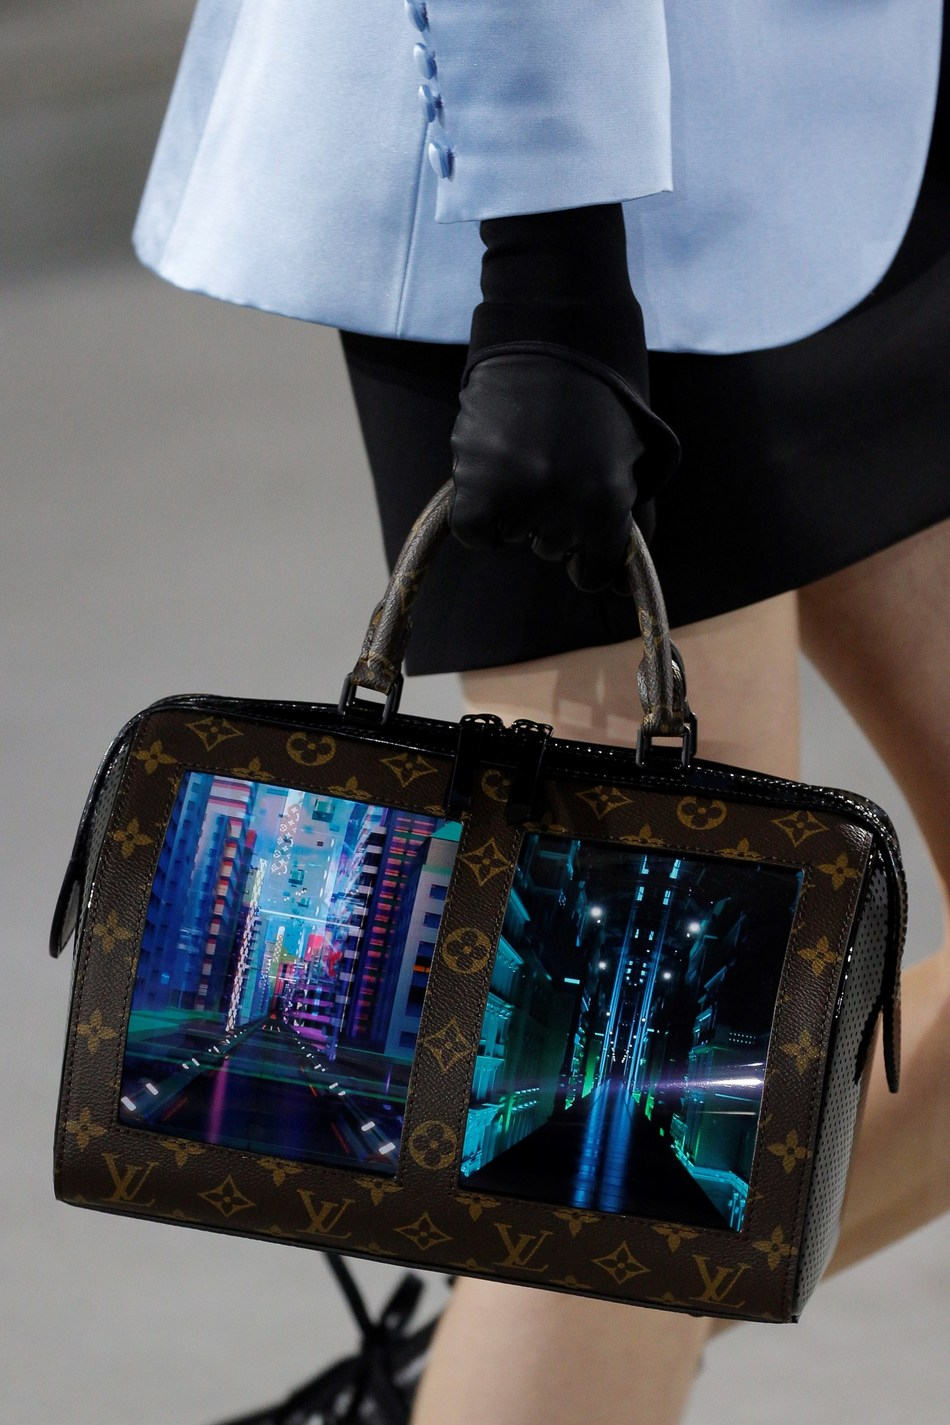 Louis Vuitton bag with Royole's flexible screen